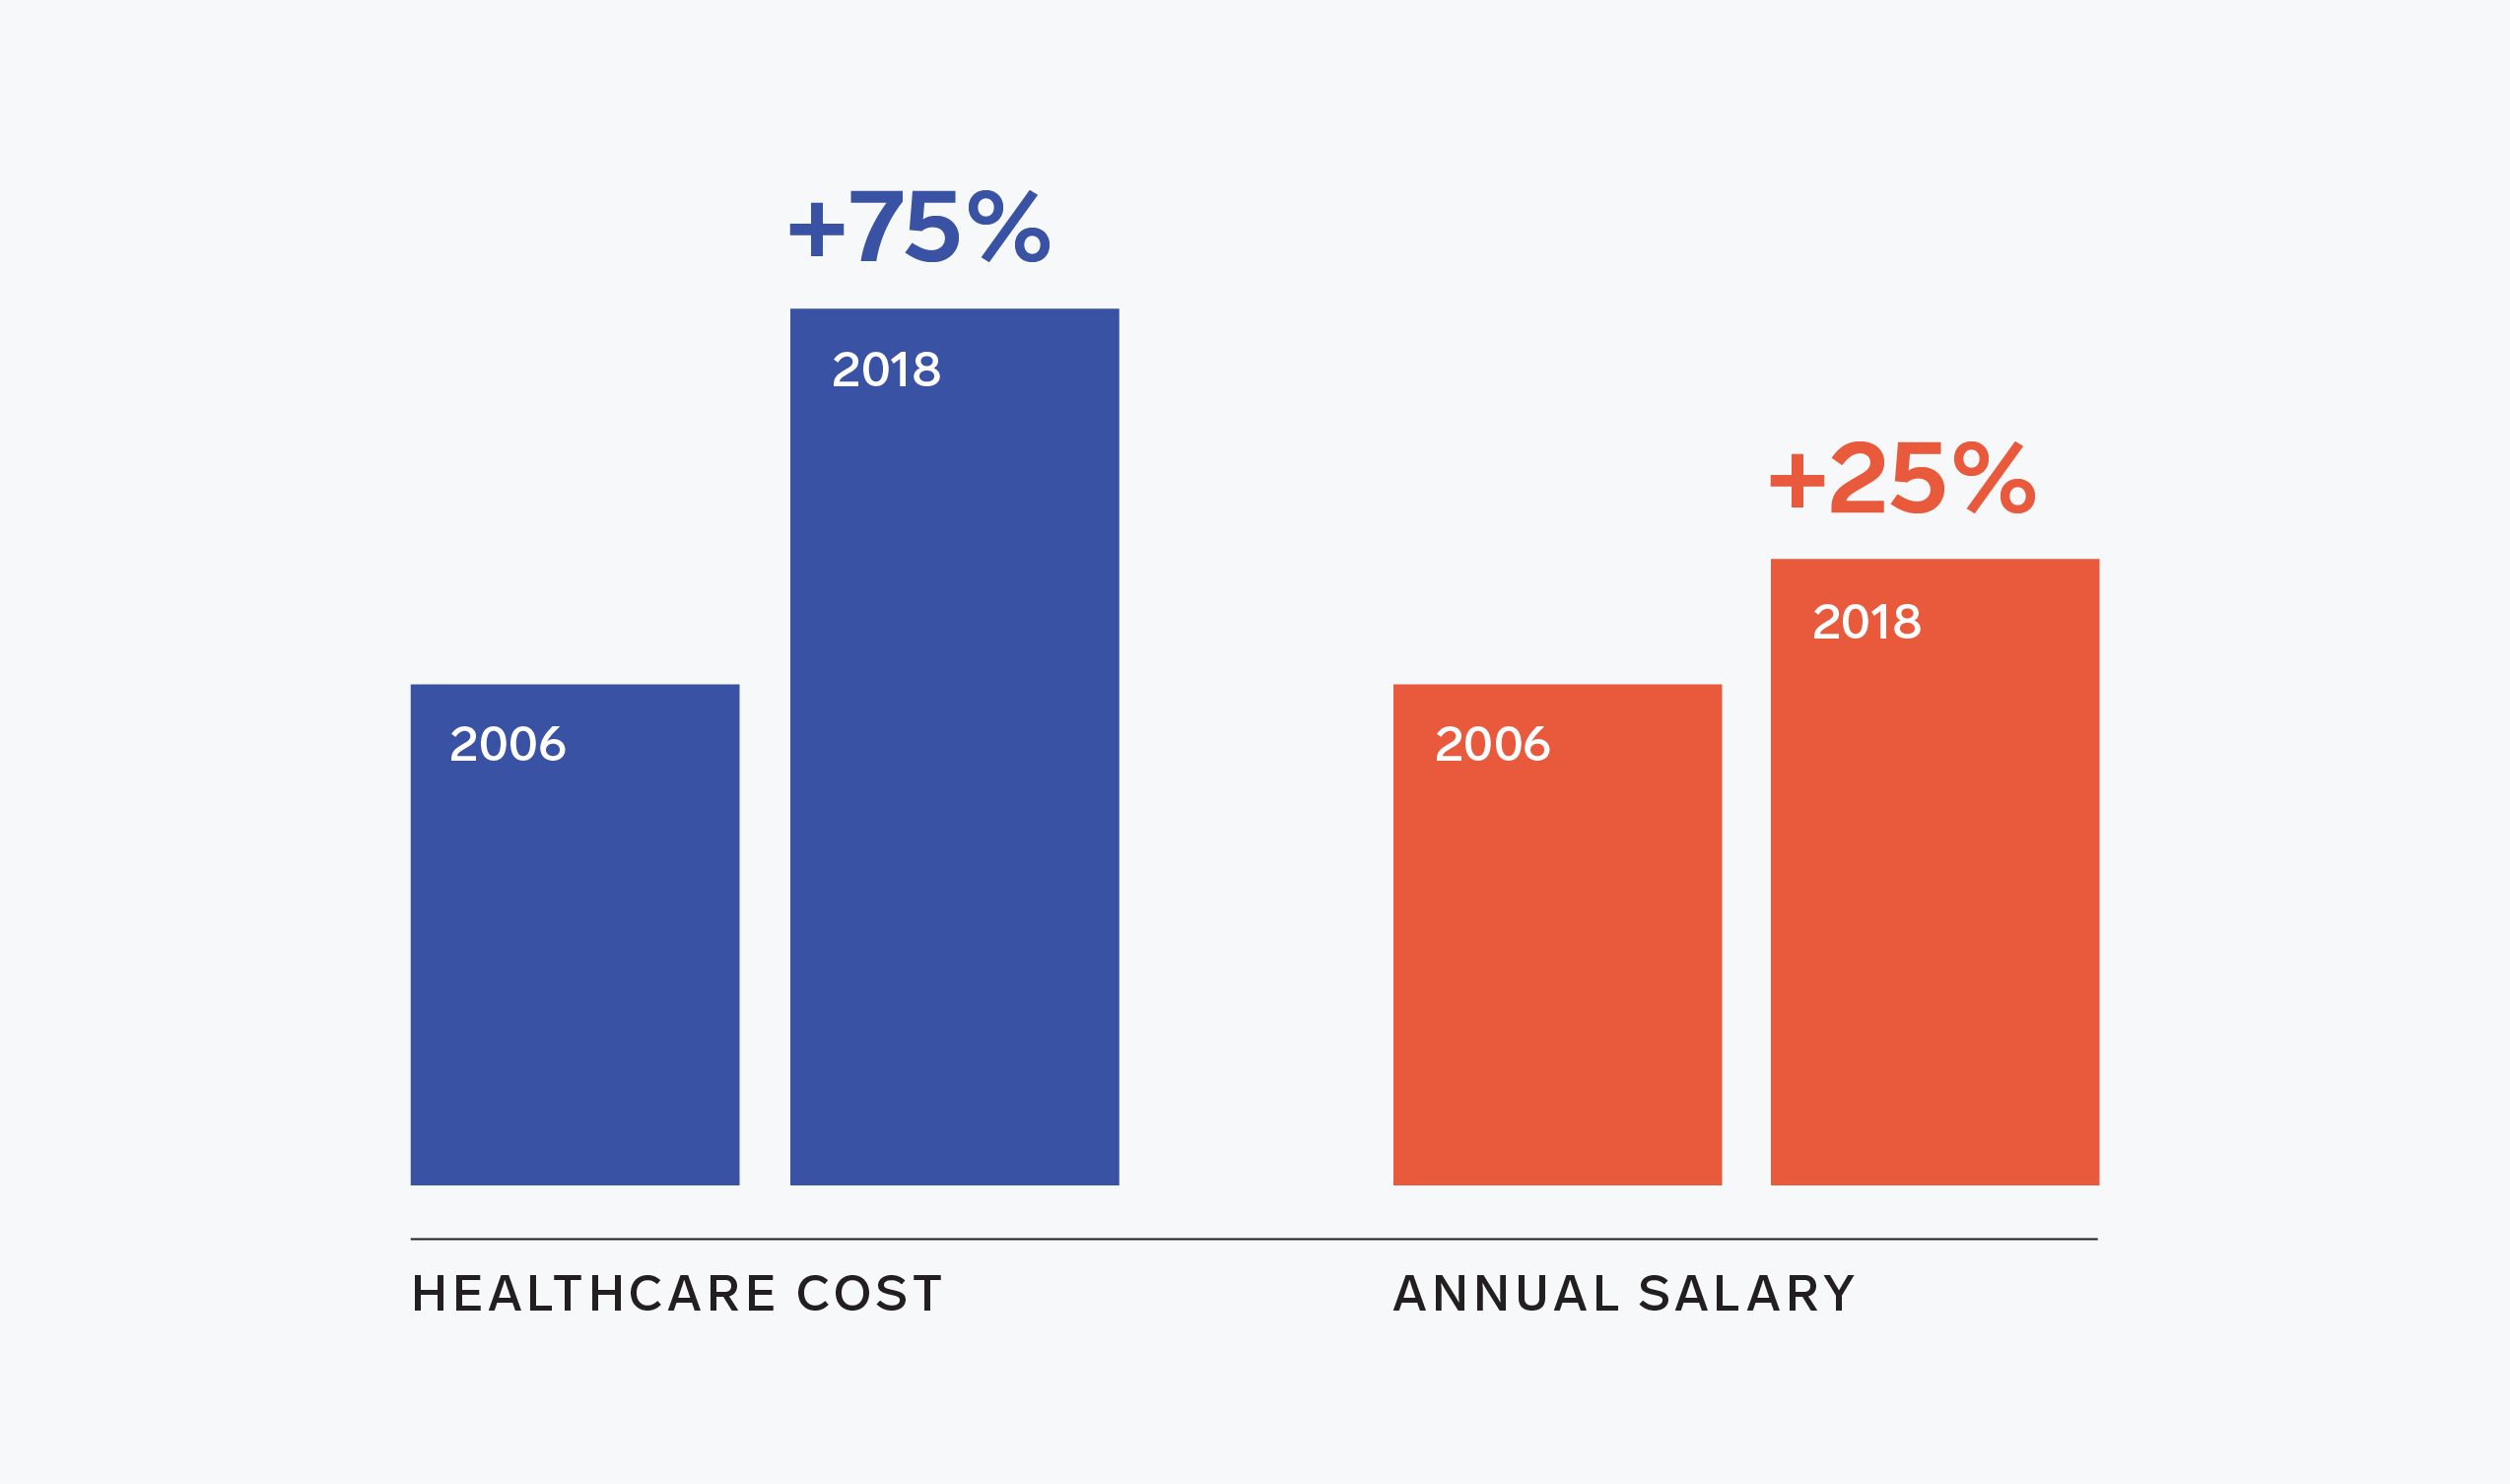 American employers are in the healthcare business